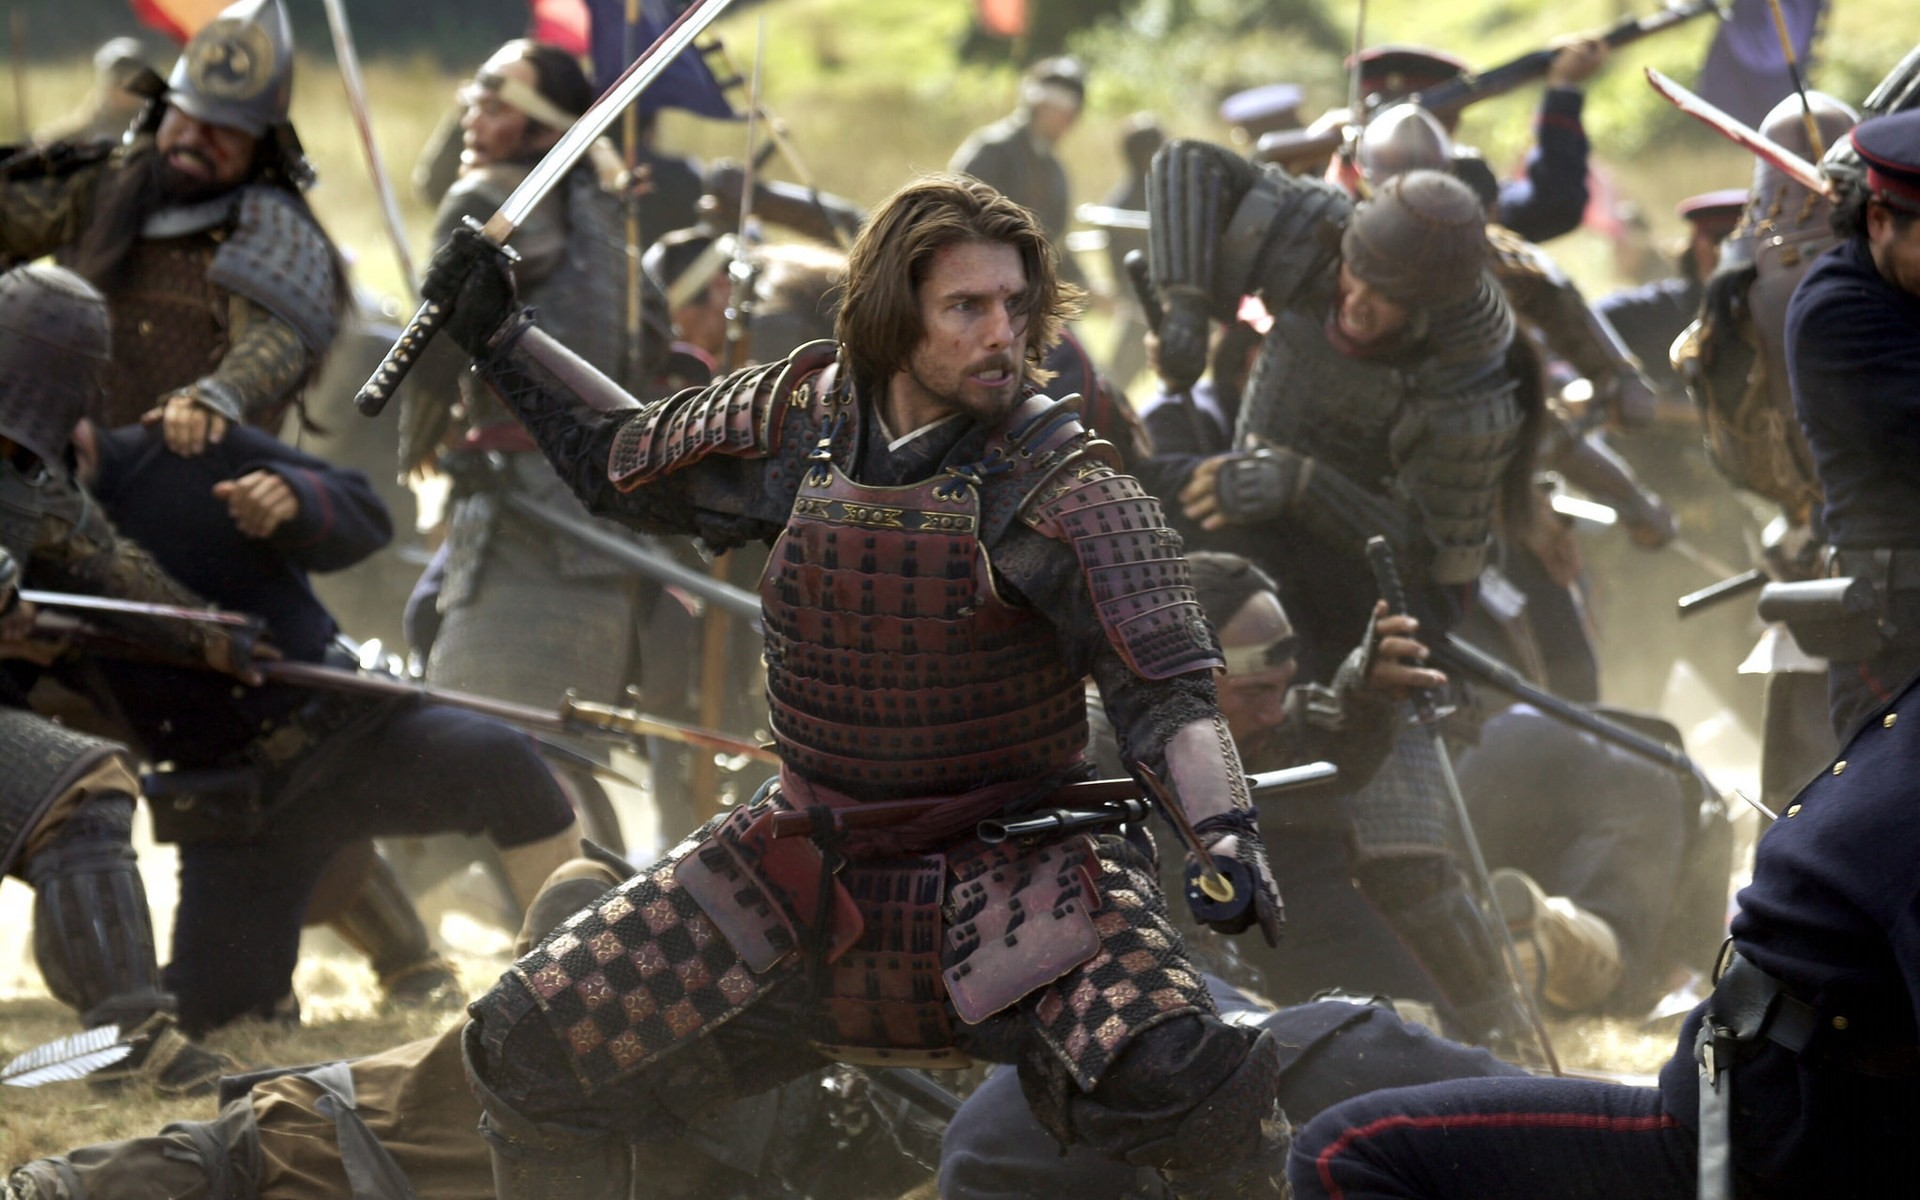 movies armor military weapon war battle soldier combat army many festival group helmet shield man uniform knight warrior gun tom cruise the last samurai